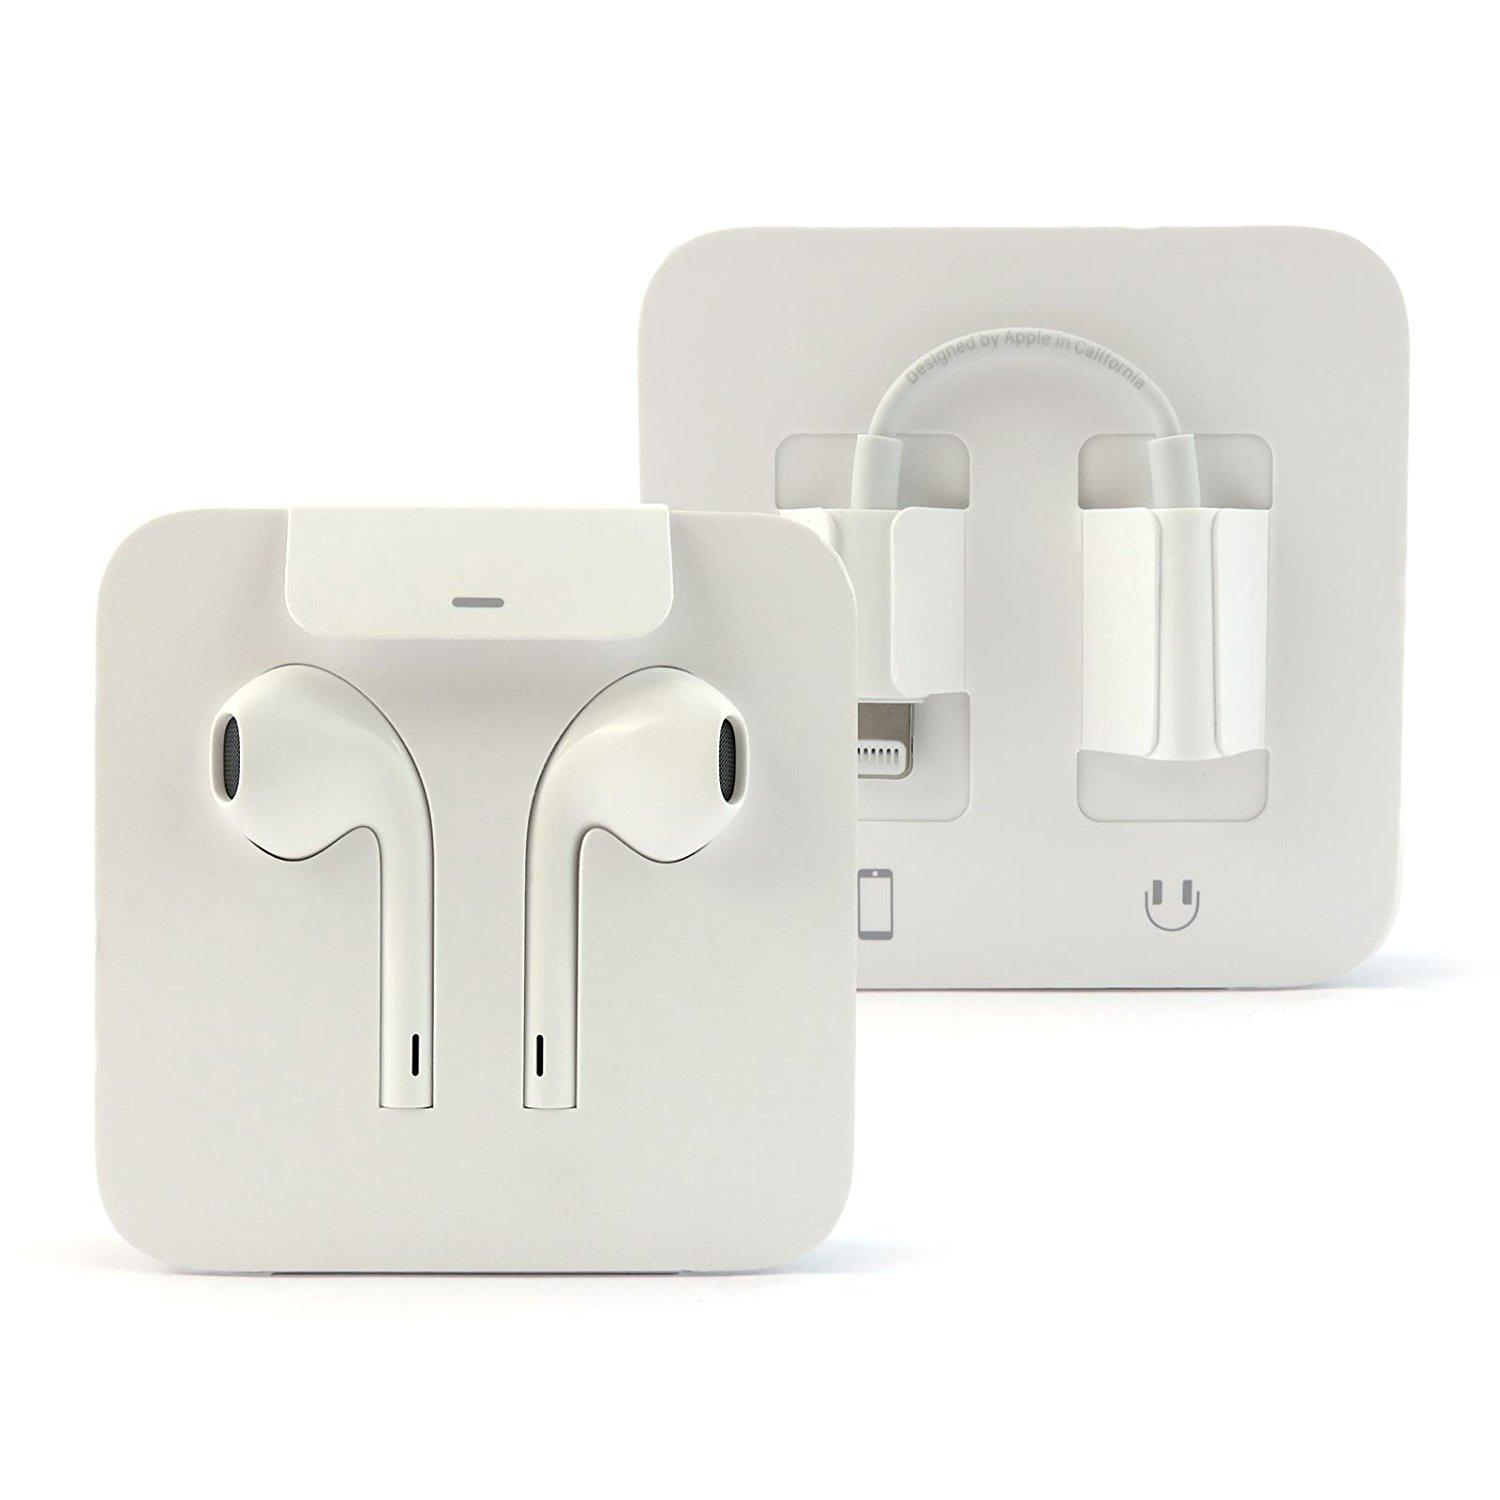 a6a9311a0ae Original Apple EarPods Handsfree with Lightning Connector for Iphone 7, 7s,  7+